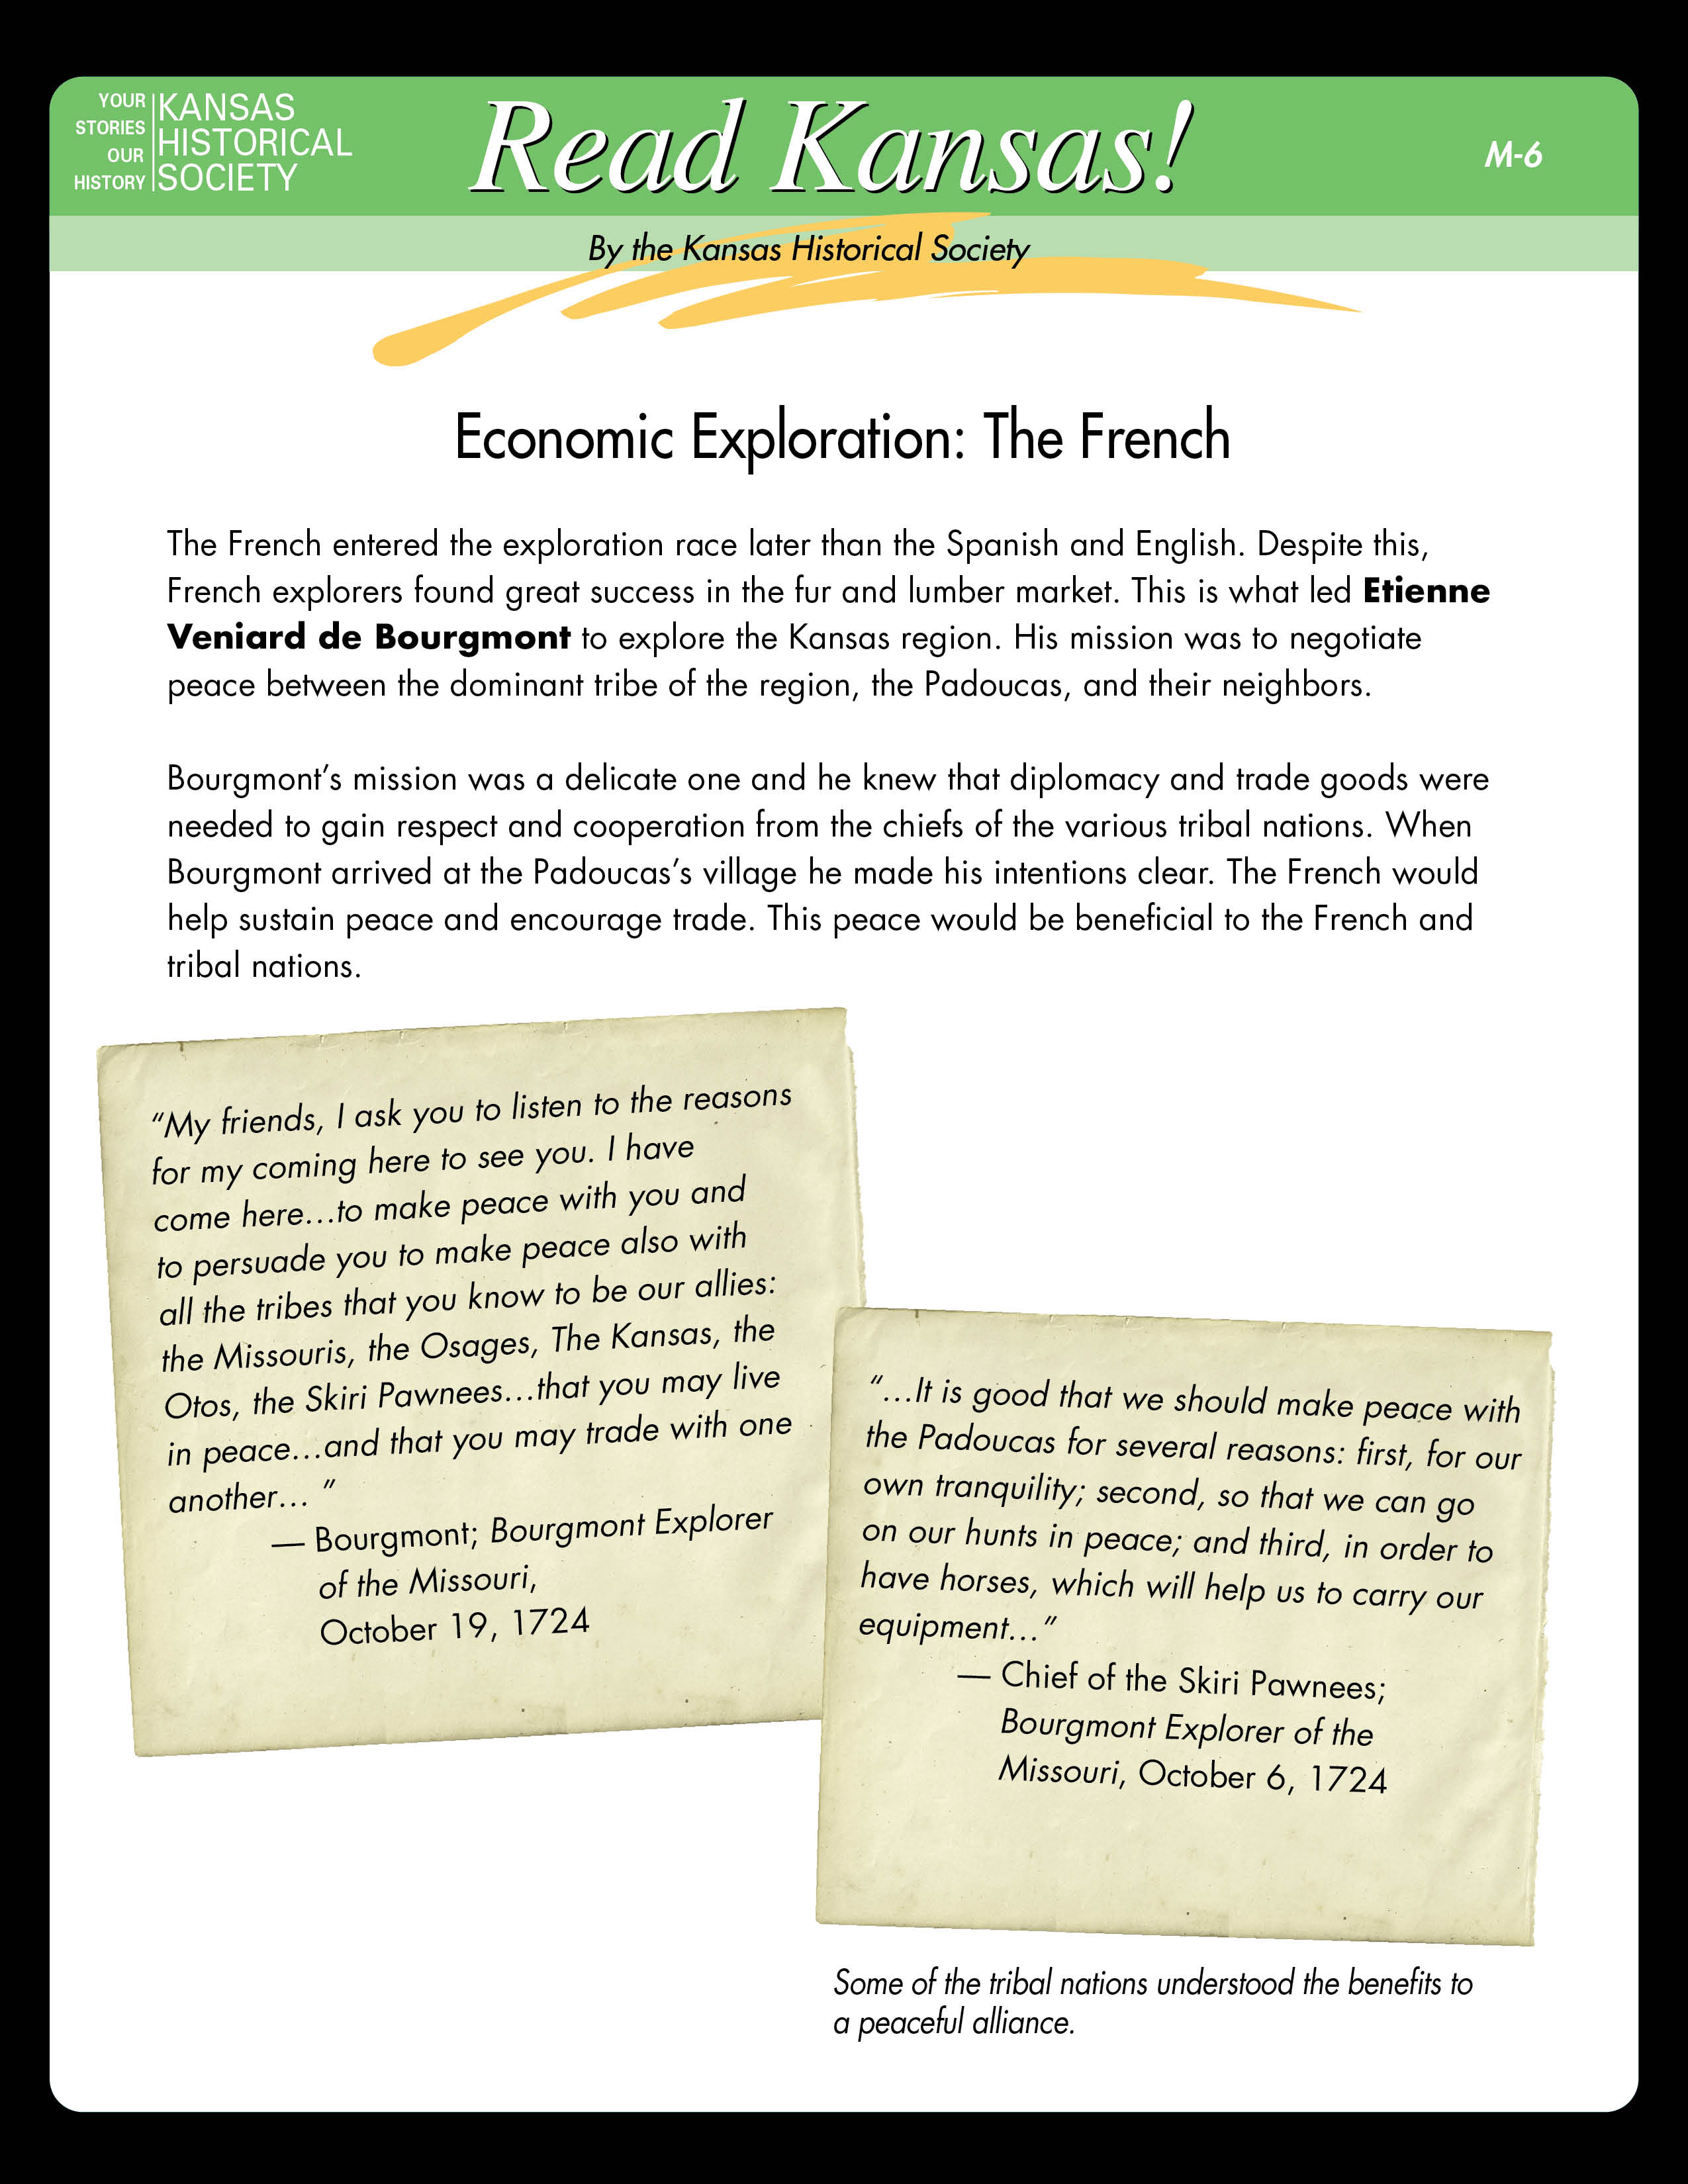 M6 - Economic Exploration: The French